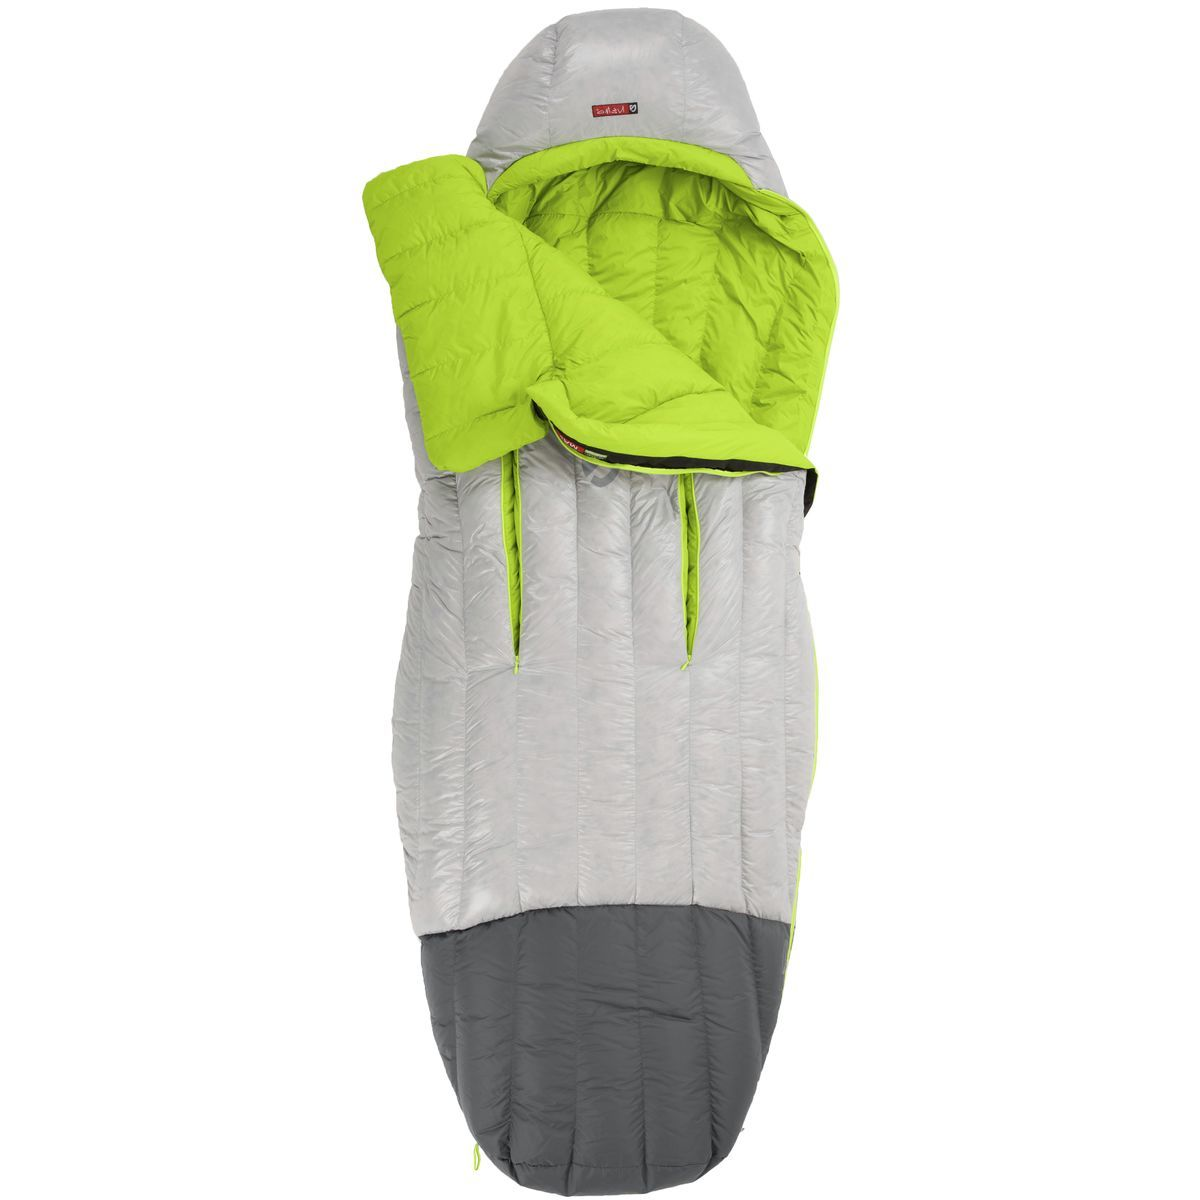 NEMO Equipment Inc. Jam 15 Sleeping Bag: 15 Degree Down - Women's